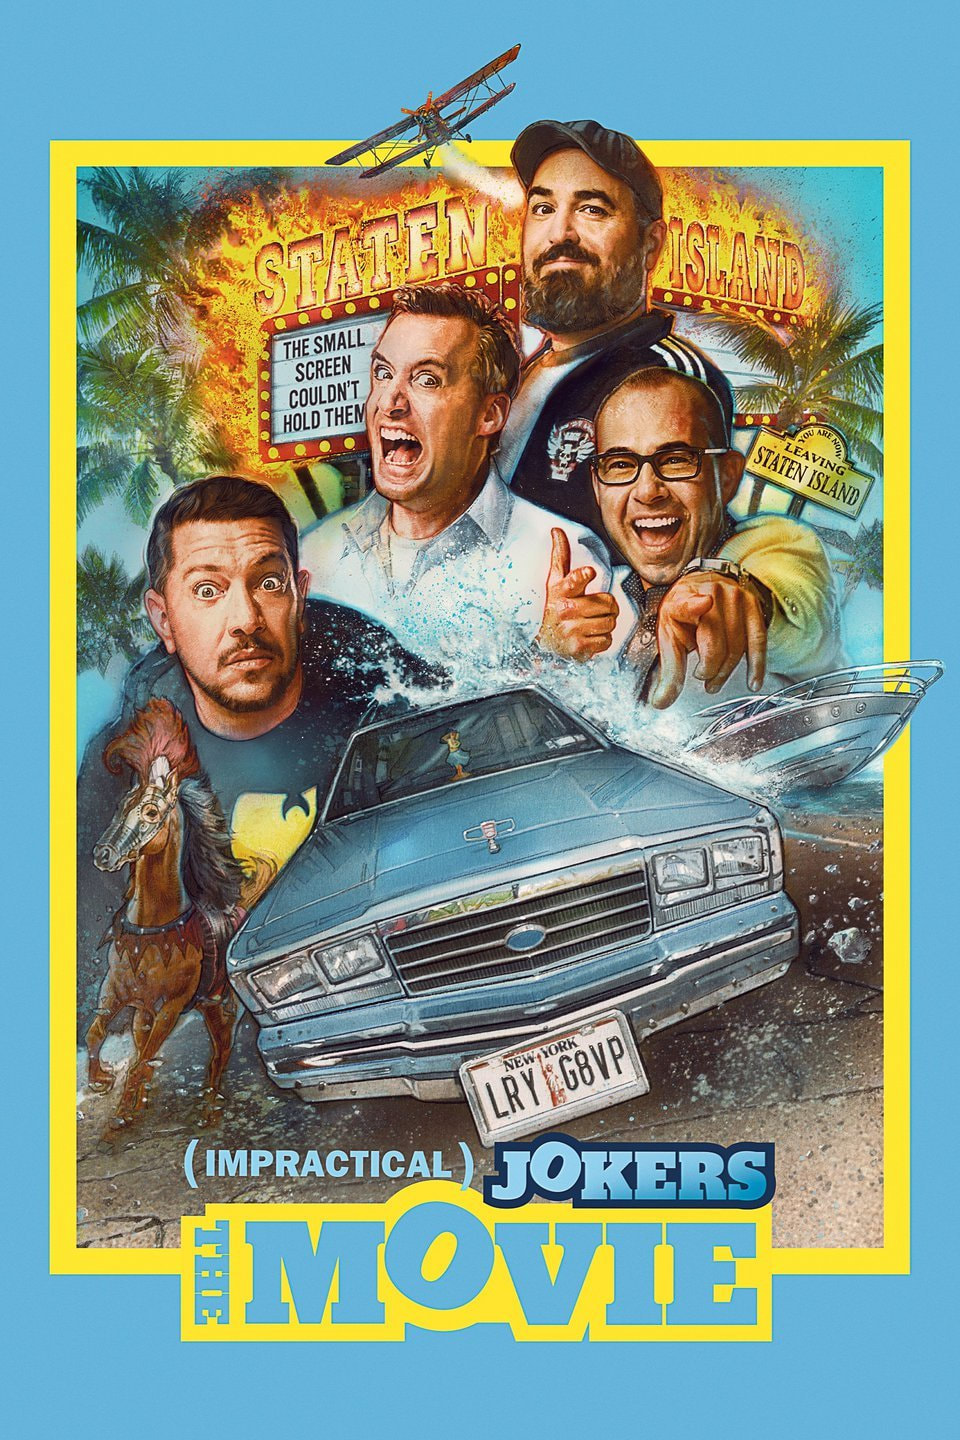 Impractical Jokers: The Movie Review